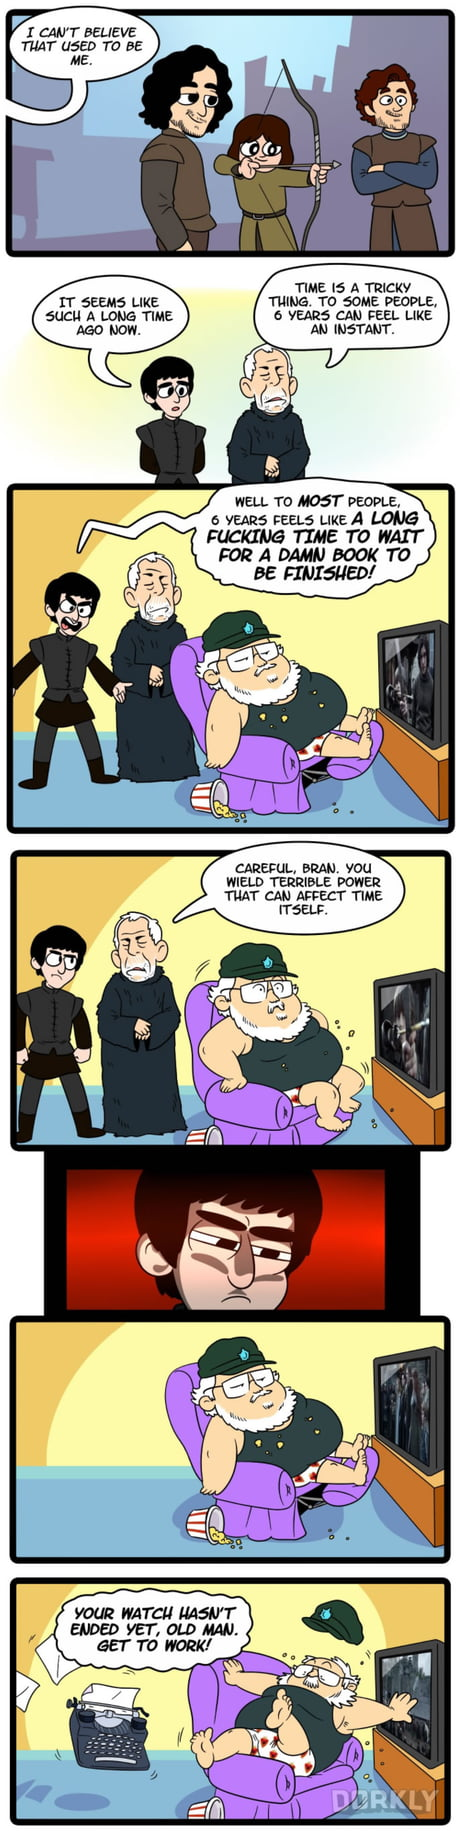 The Best Use For Bran Stark's Magic Powers